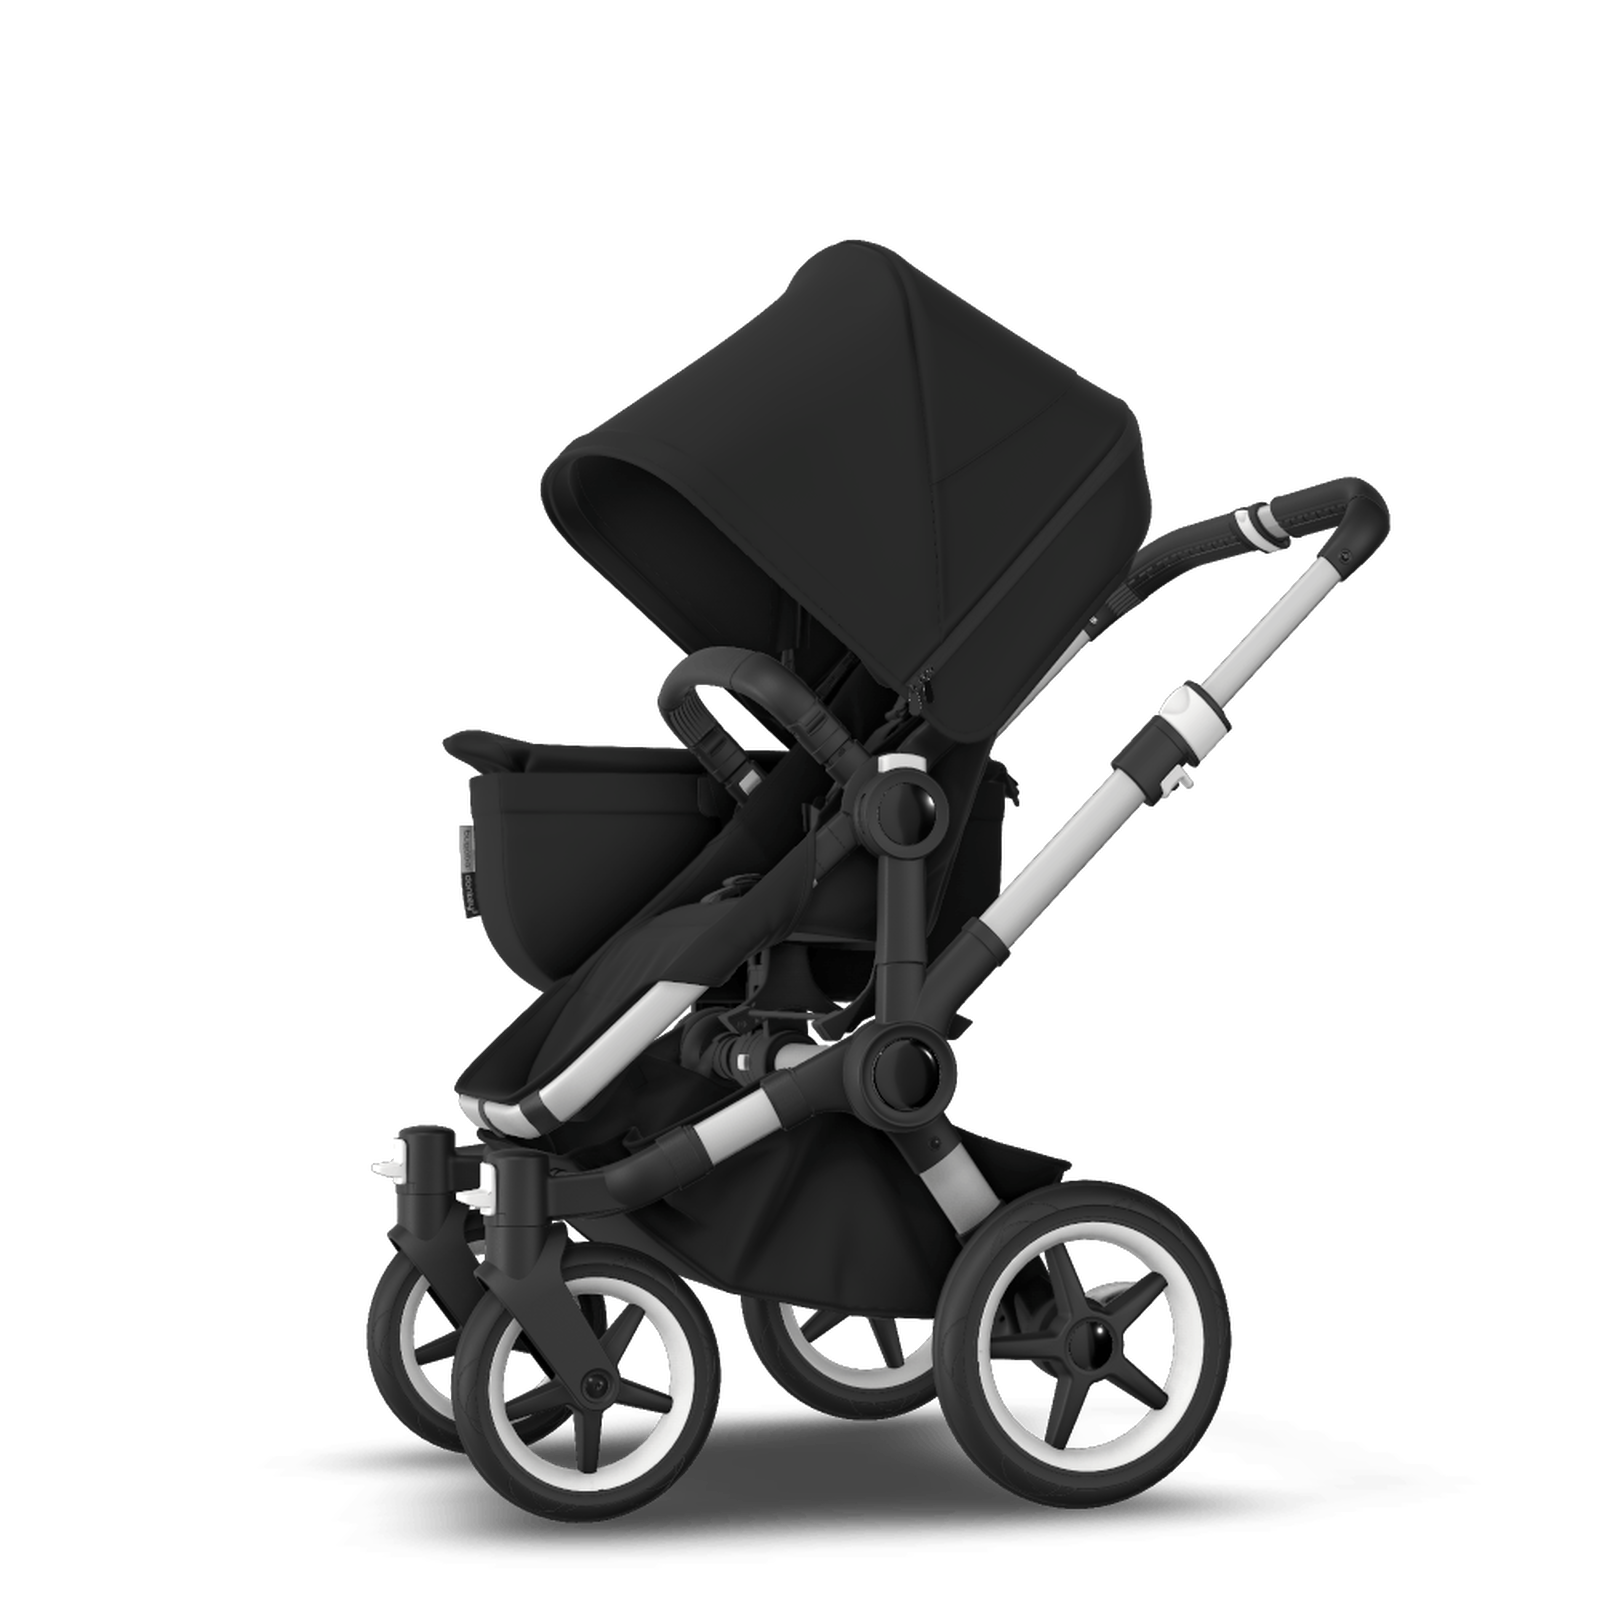 Bugaboo Donkey 3 Mono seat and bassinet stroller